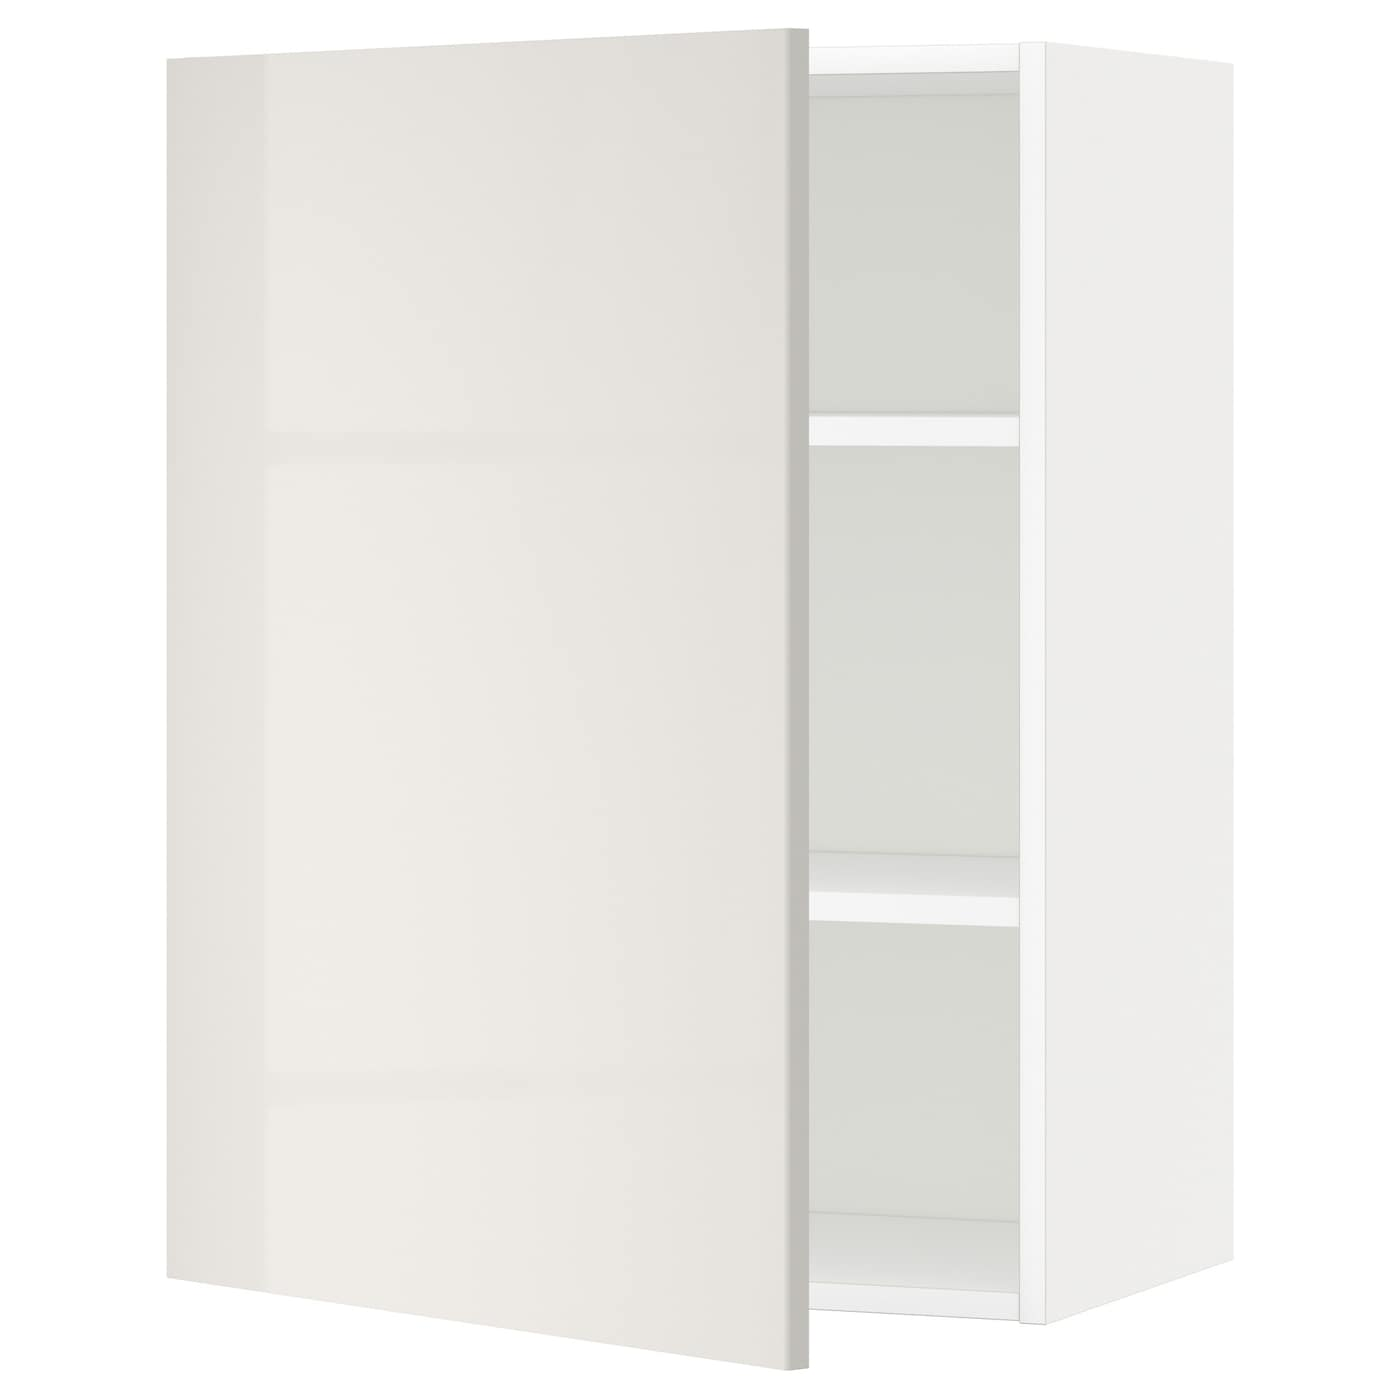 METOD Wall Cabinet With Shelves White/ringhult Light Grey